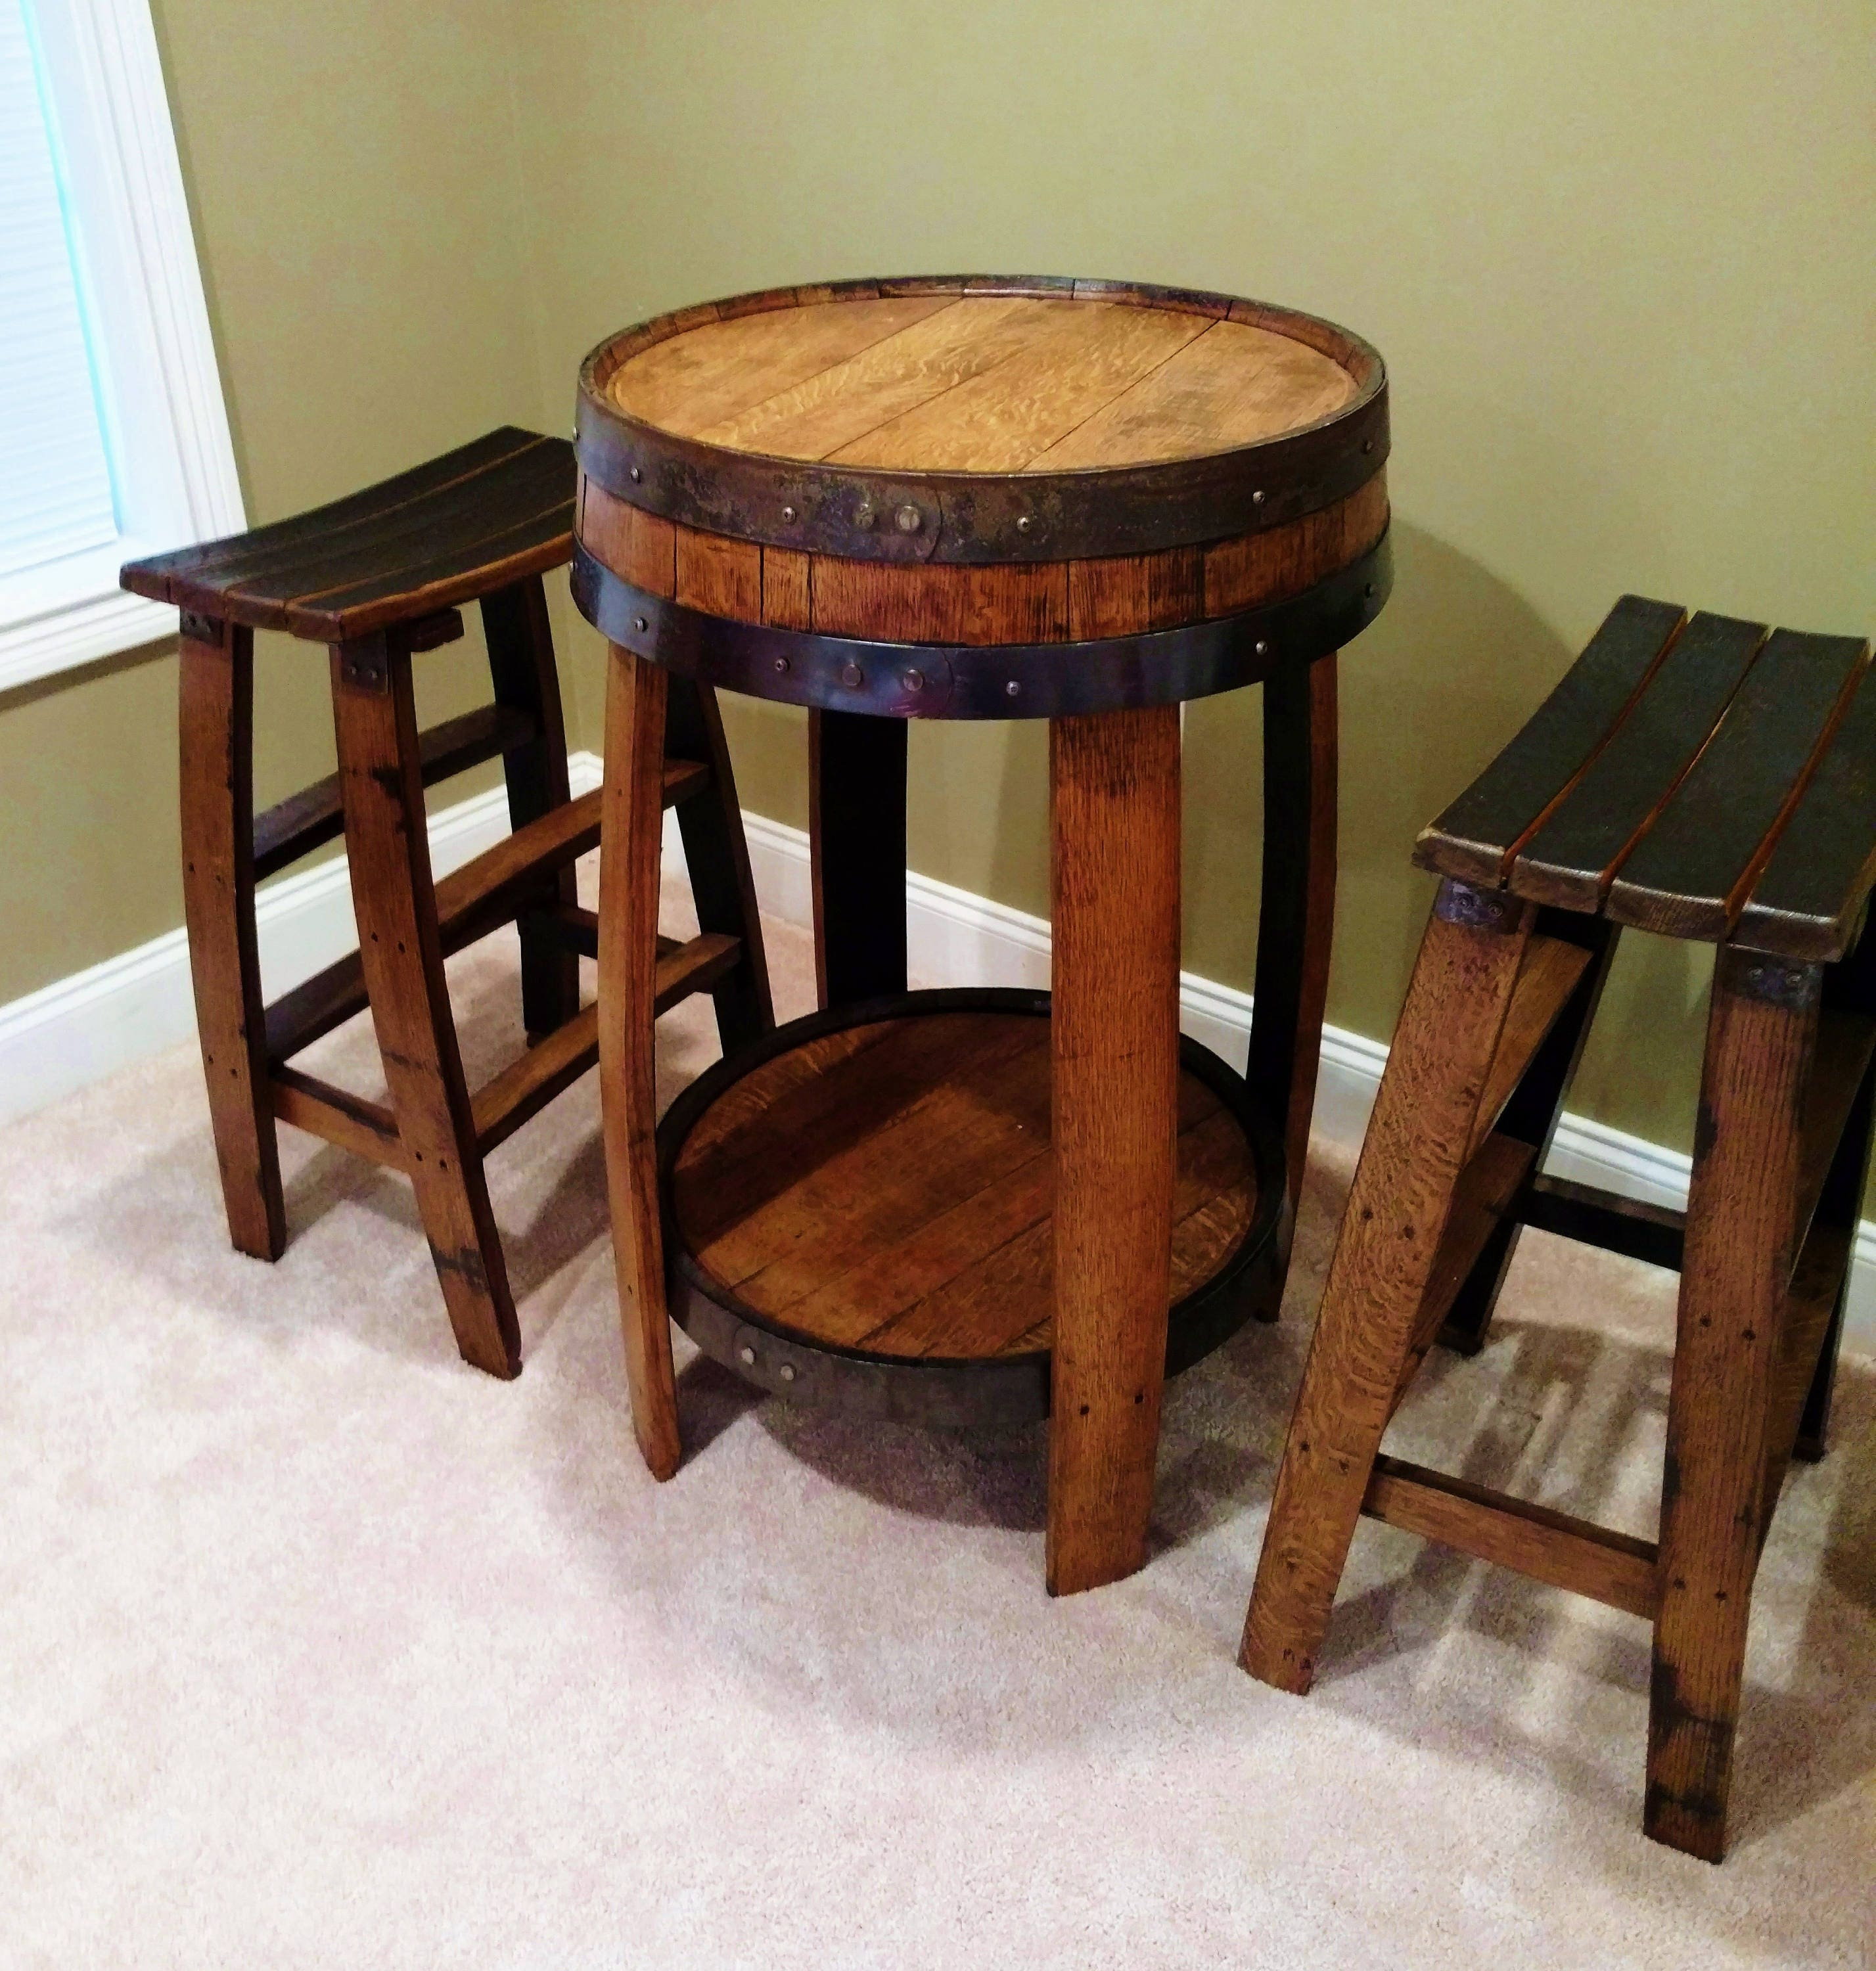 whiskey barrel pub table handcrafted from a whiskey barrel